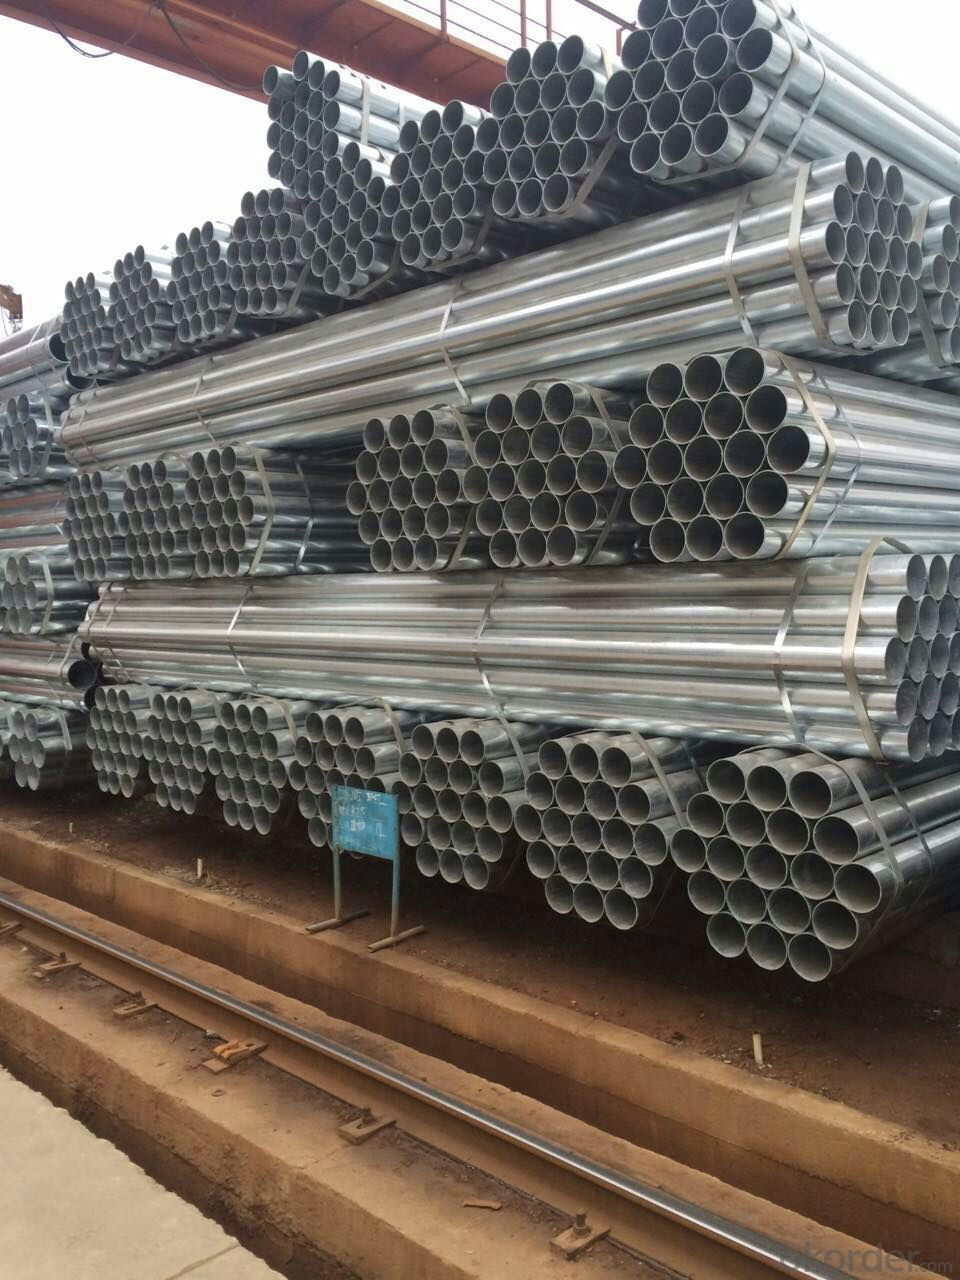 Hot dip galvanized welded steel pipe for construction machinery